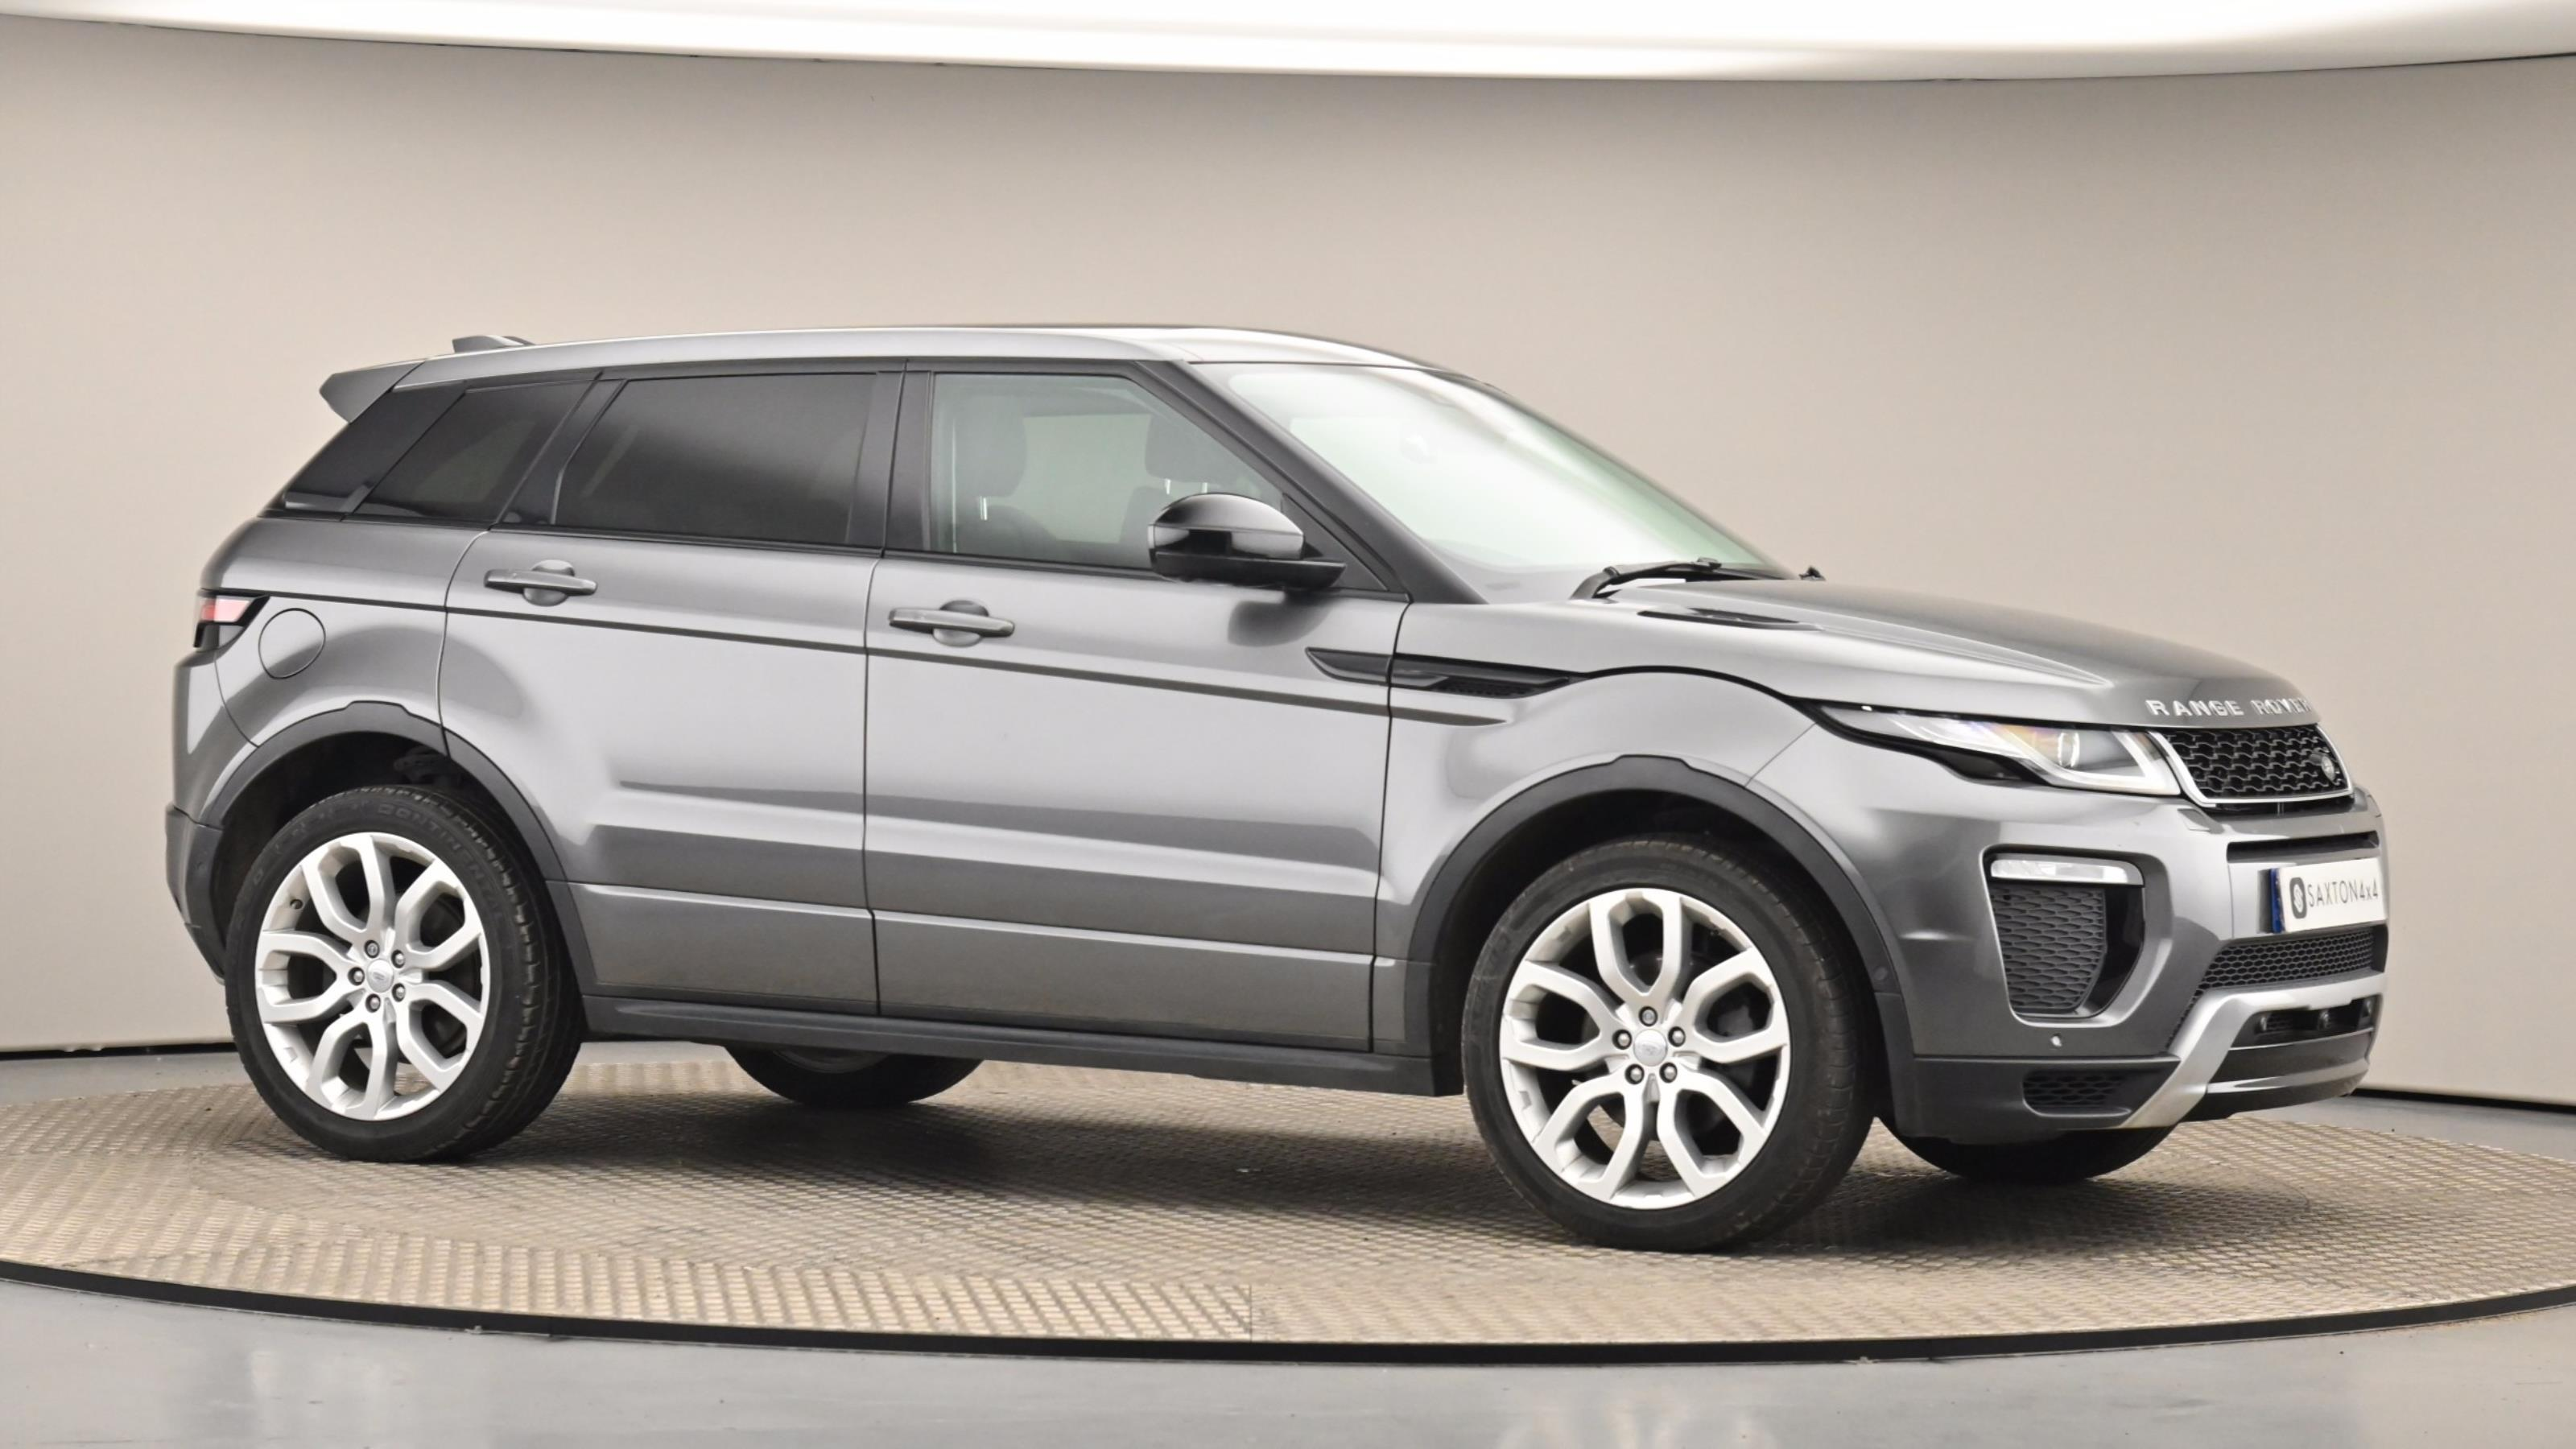 Used 2016 Land Rover RANGE ROVER EVOQUE 2.0 TD4 HSE Dynamic Lux 5dr at Saxton4x4